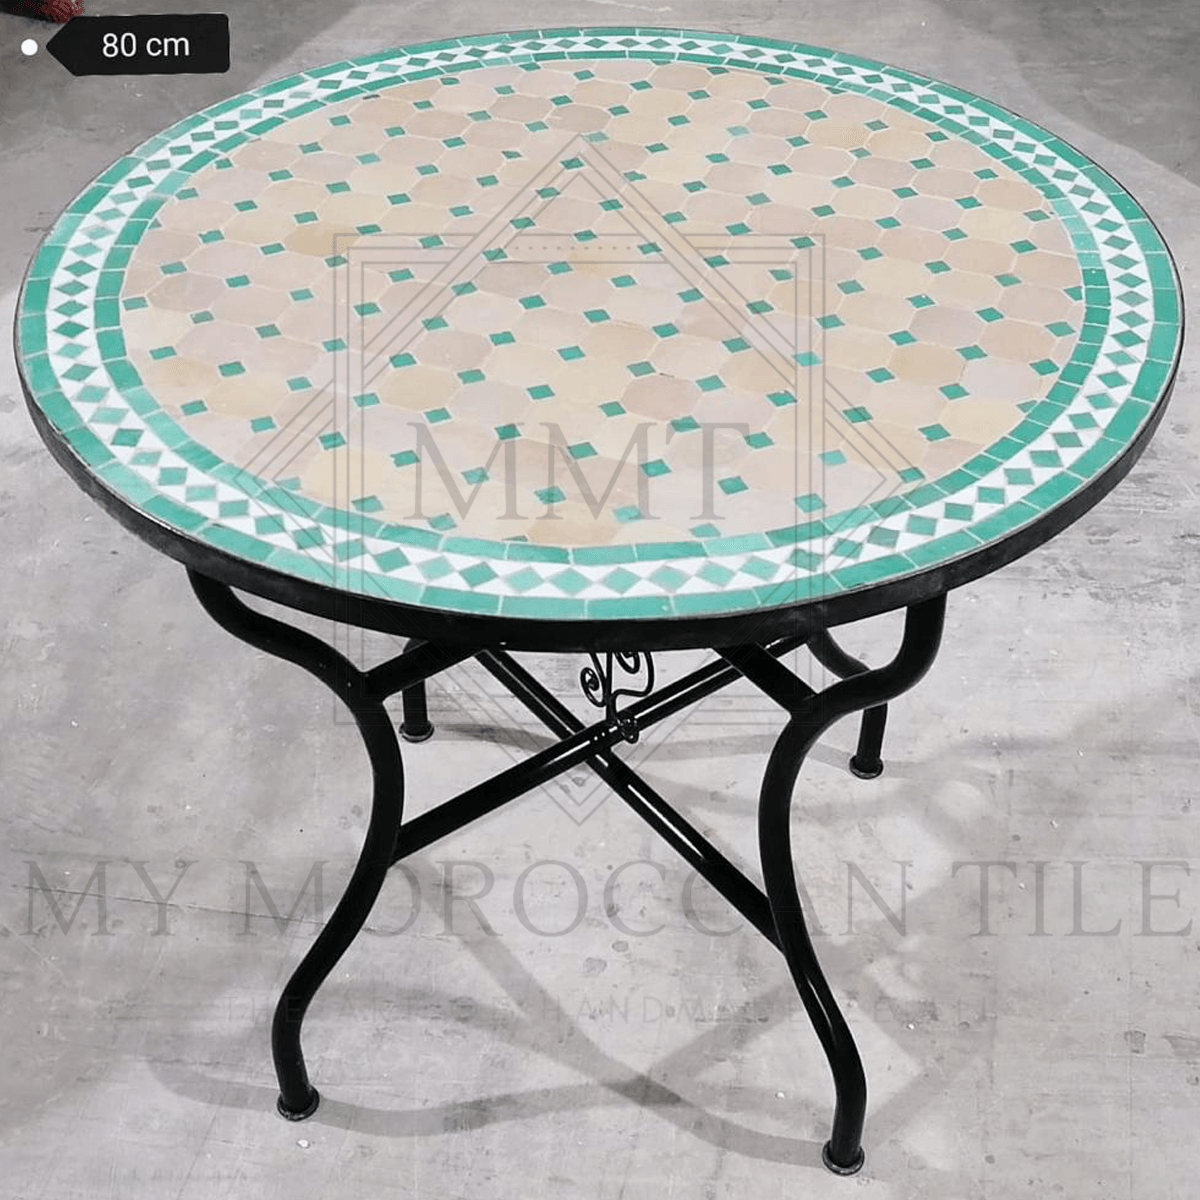 Handmade Moroccan Mosaic Table 2188-08